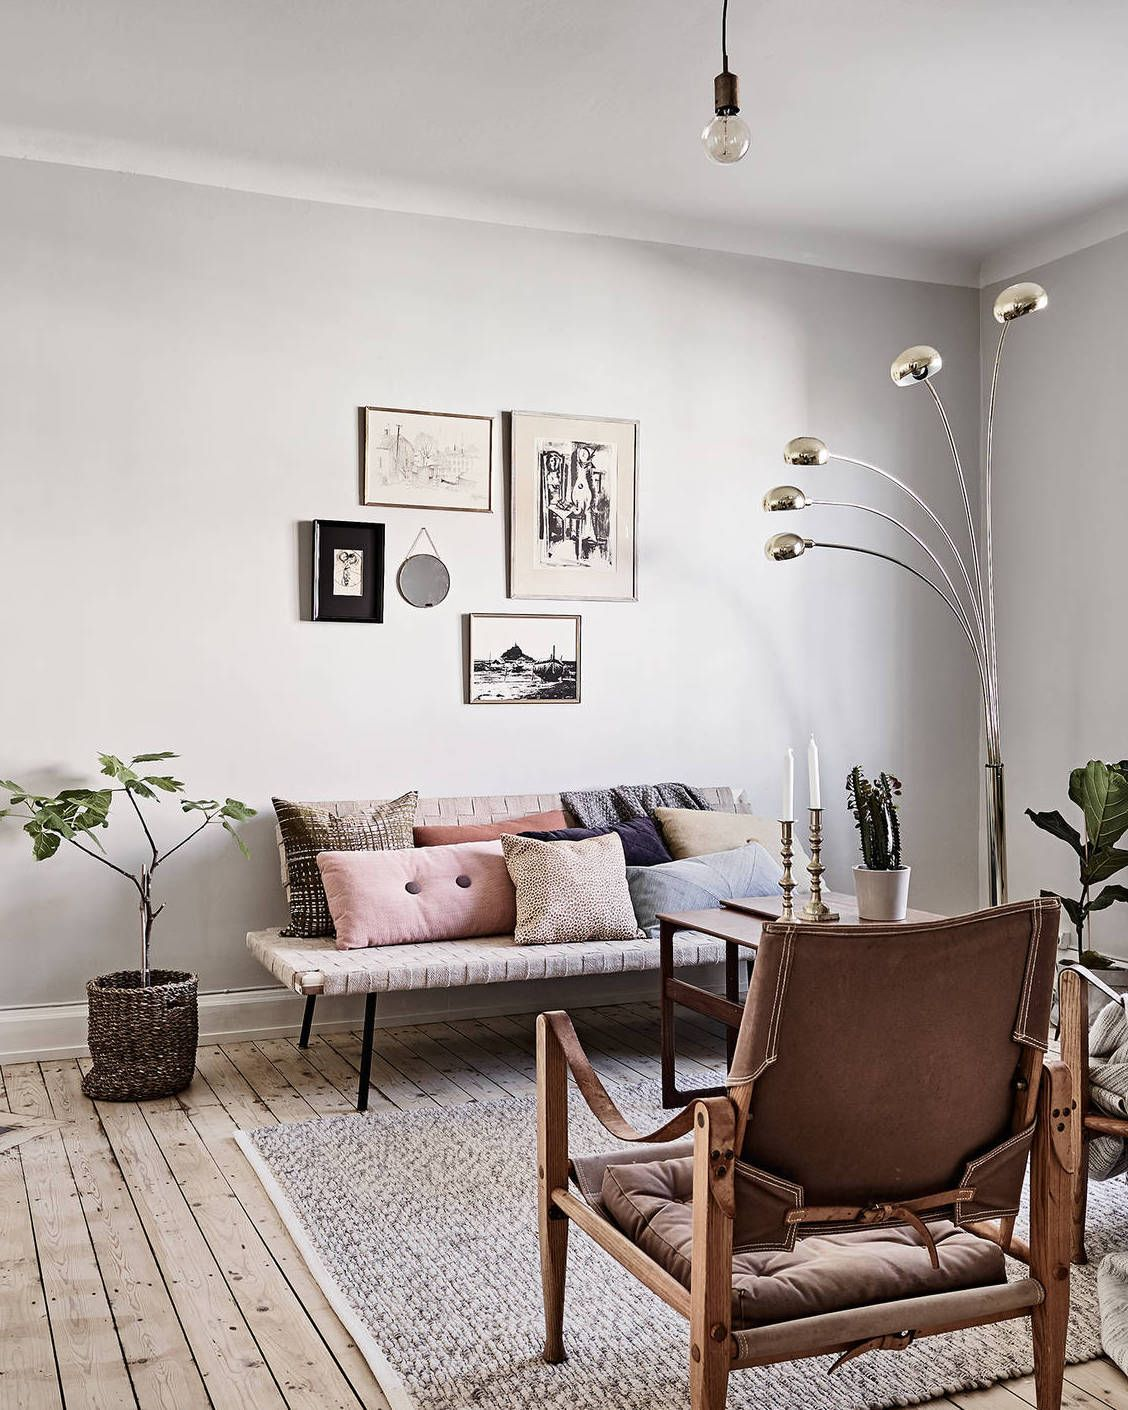 Mint green and greige | Pinterest | Mint green, Living rooms and ...